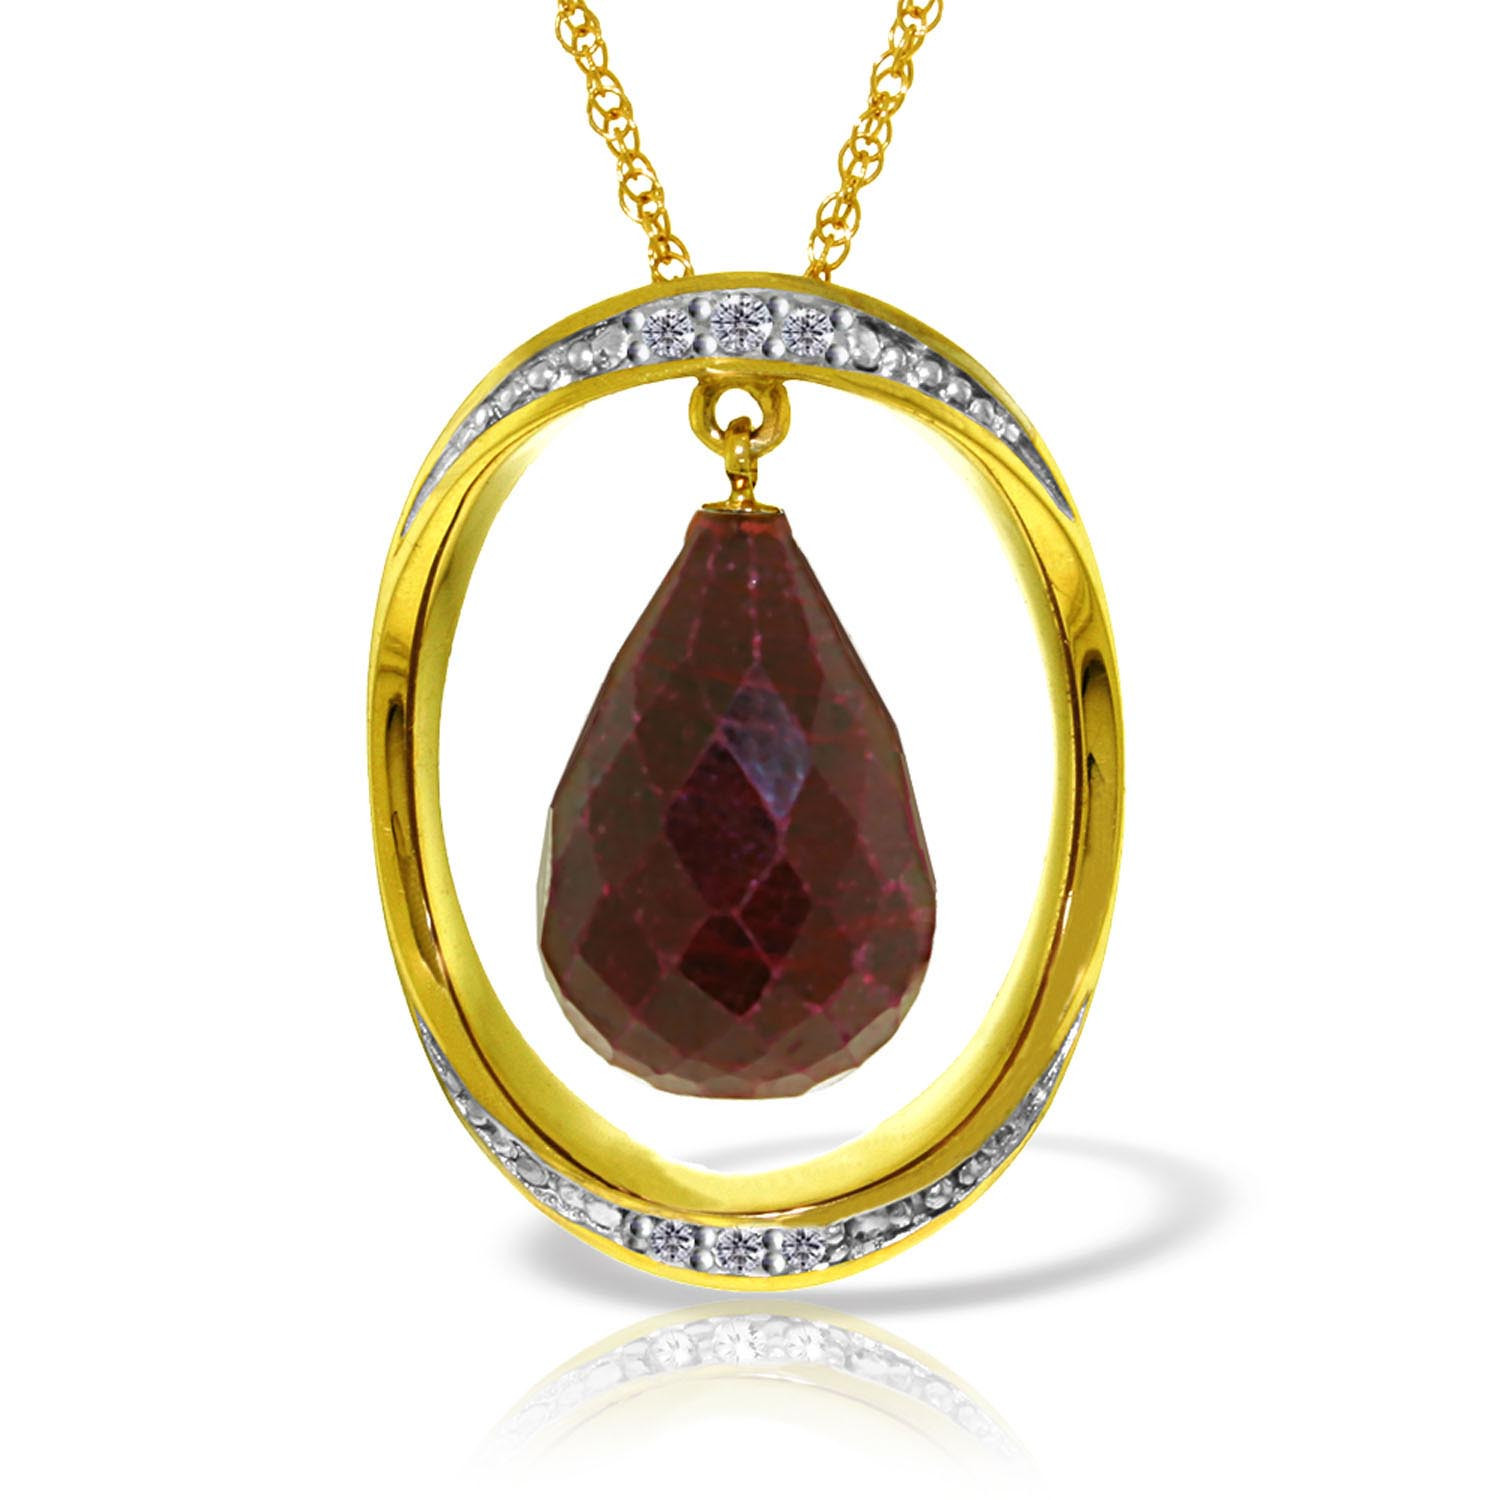 Ruby & Diamond Pendant Necklace in 9ct Gold